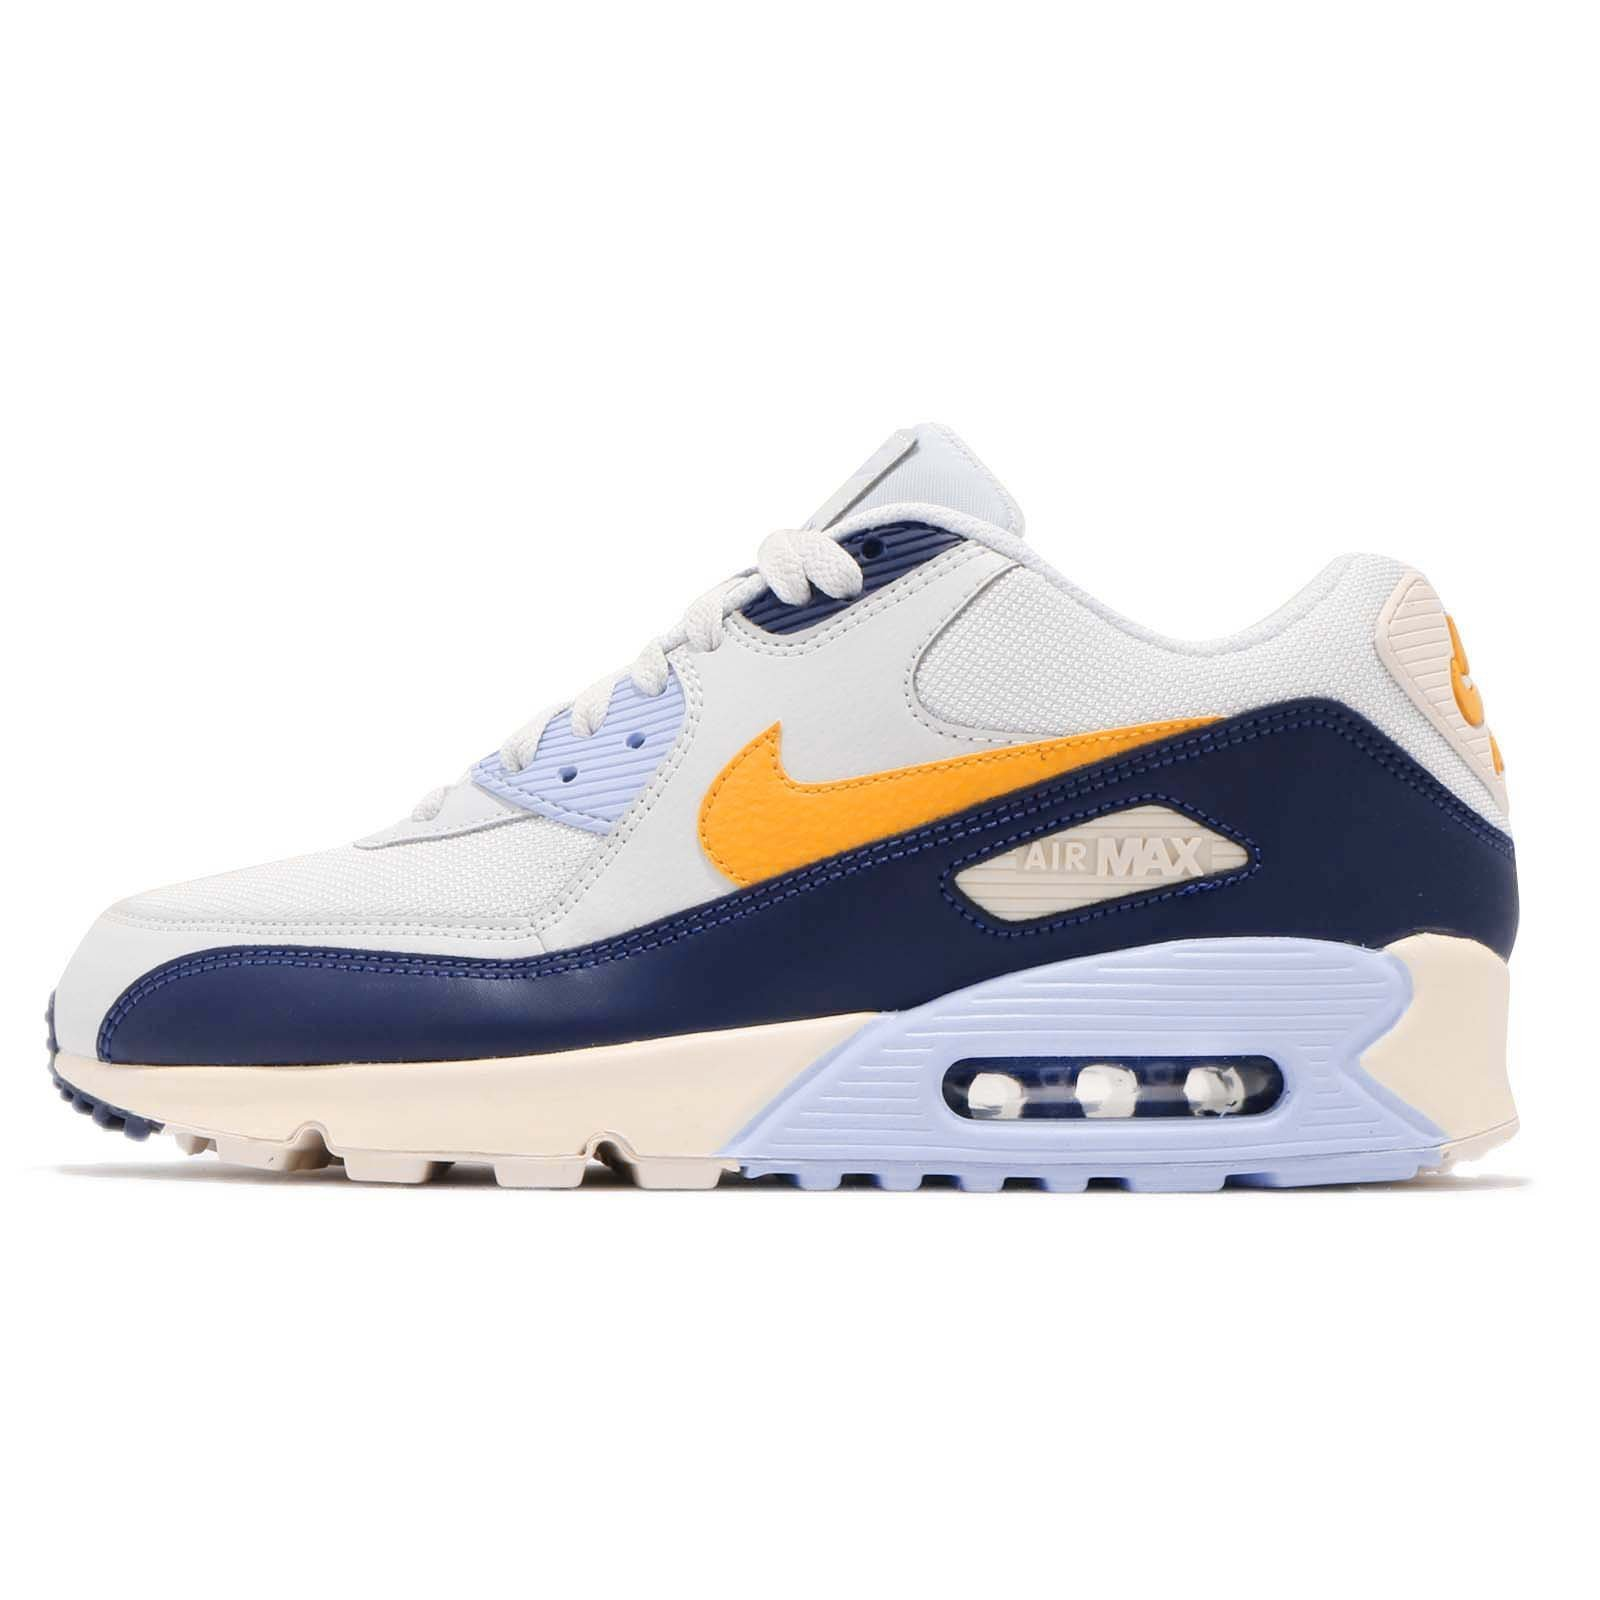 Nike Mens Air Max 90 Essential Running Shoes Pure PlatinumYellow OchreBlue Void AJ1285 008 Size 9